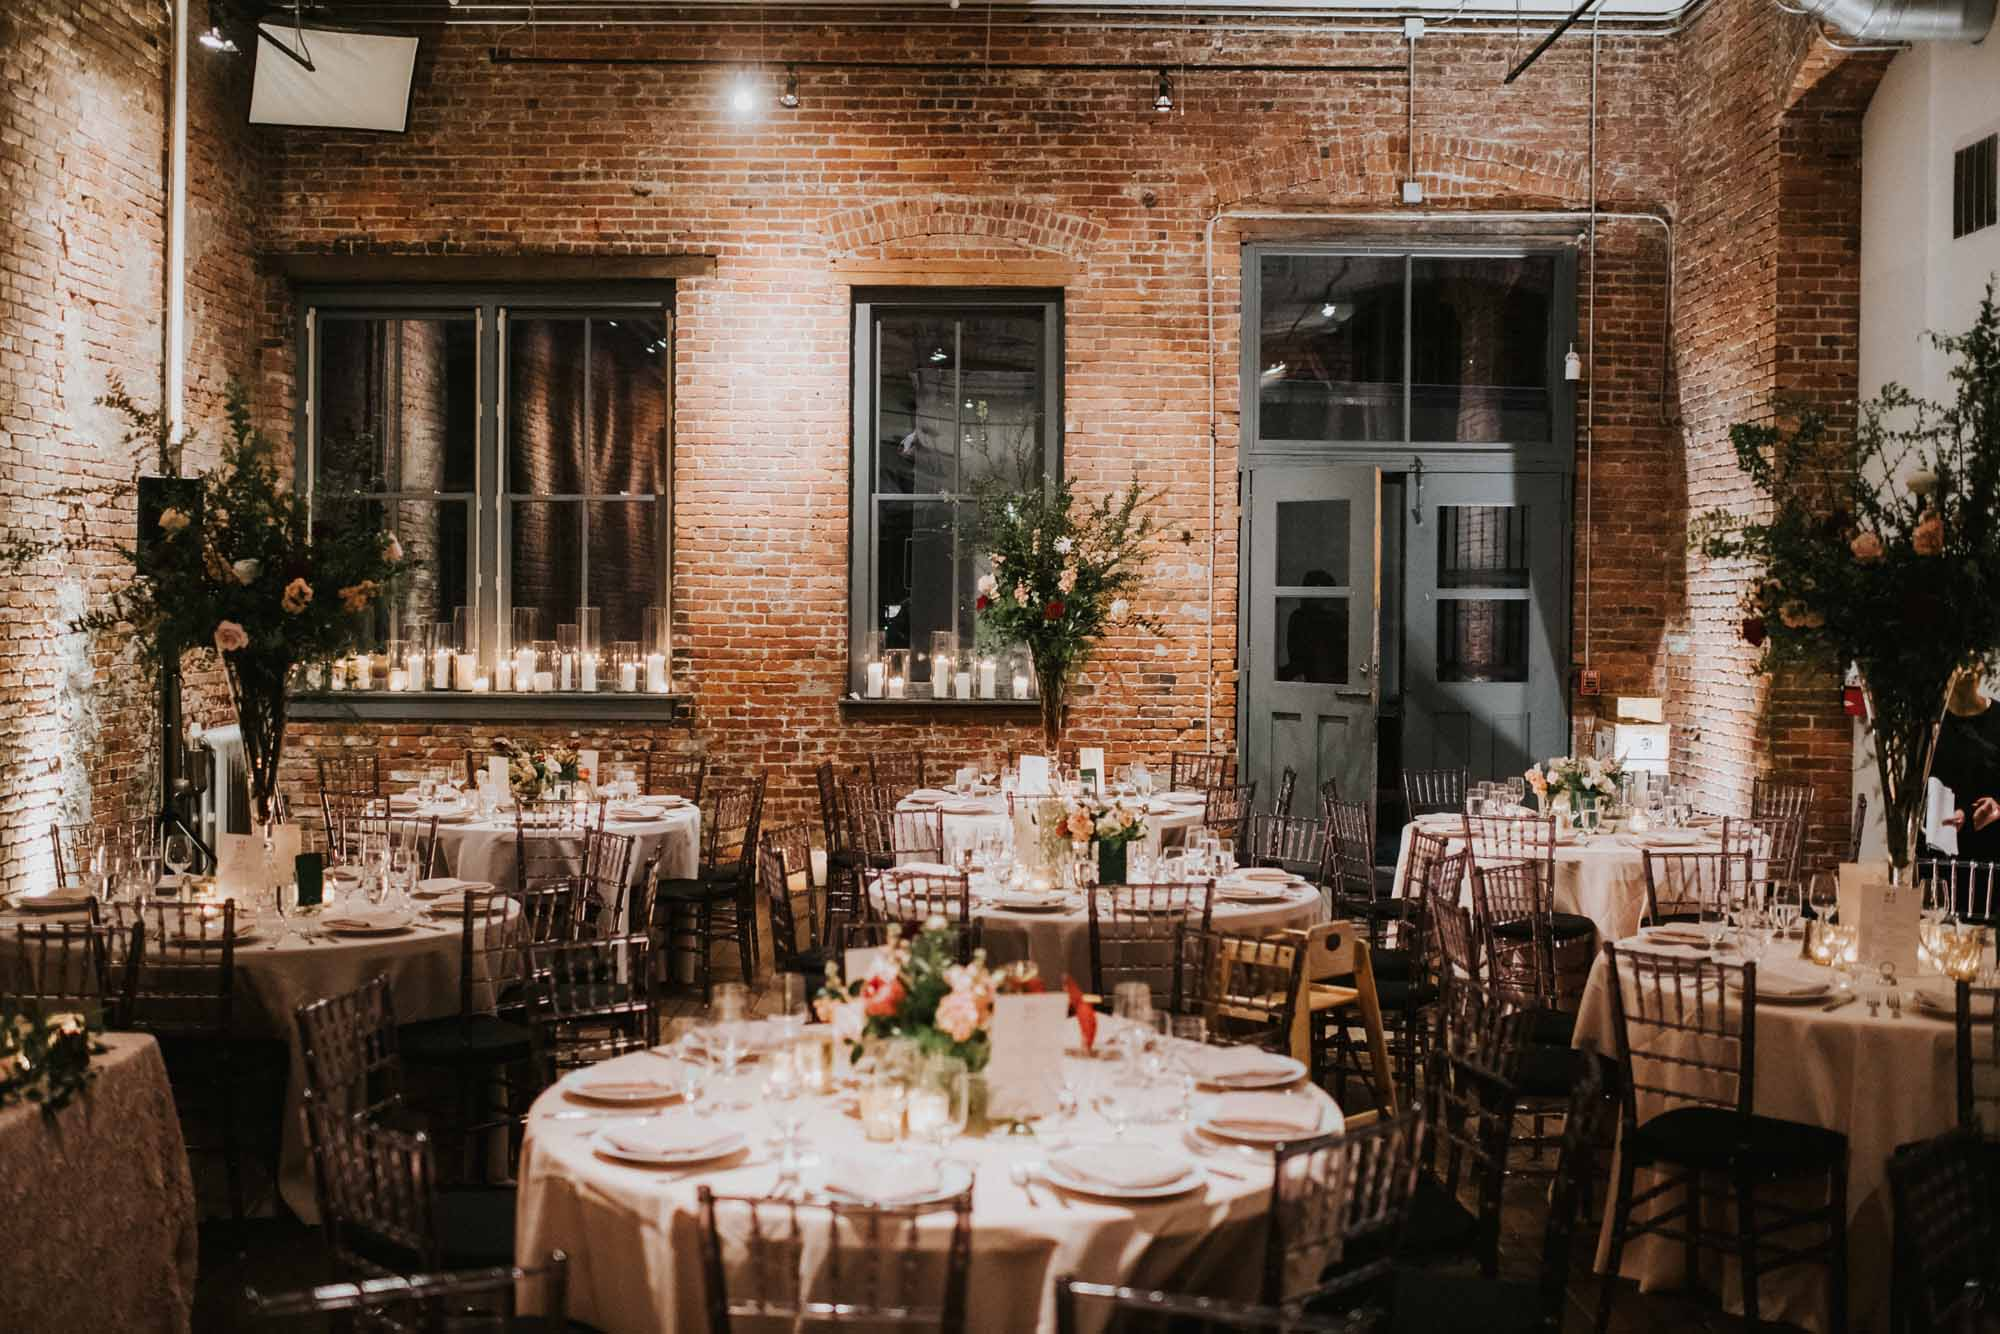 wedding reception with round tables and brick walls